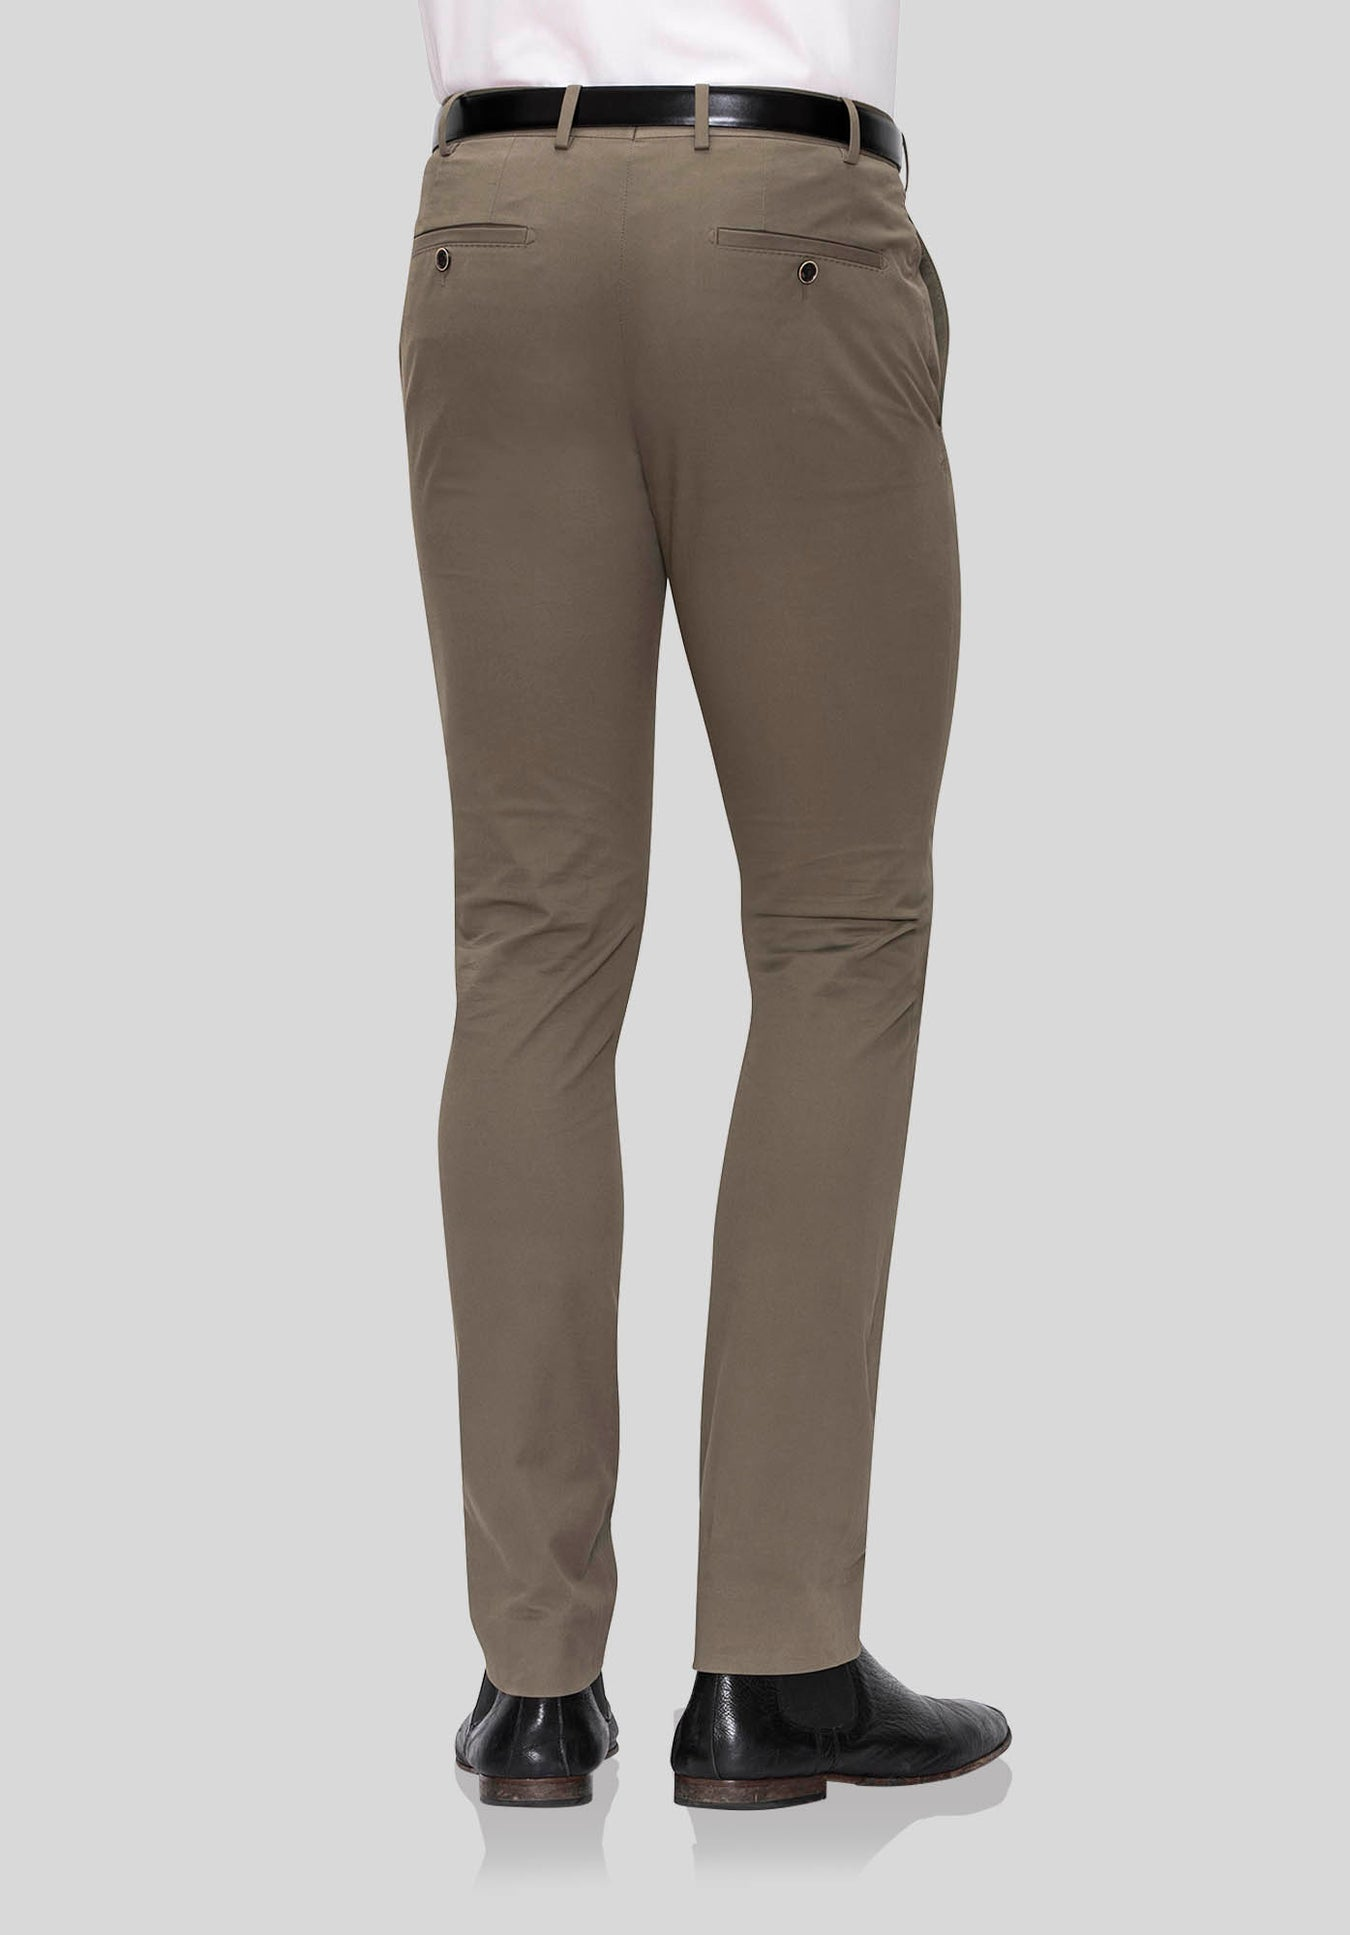 BEACON CHINO FJF975 - Olive